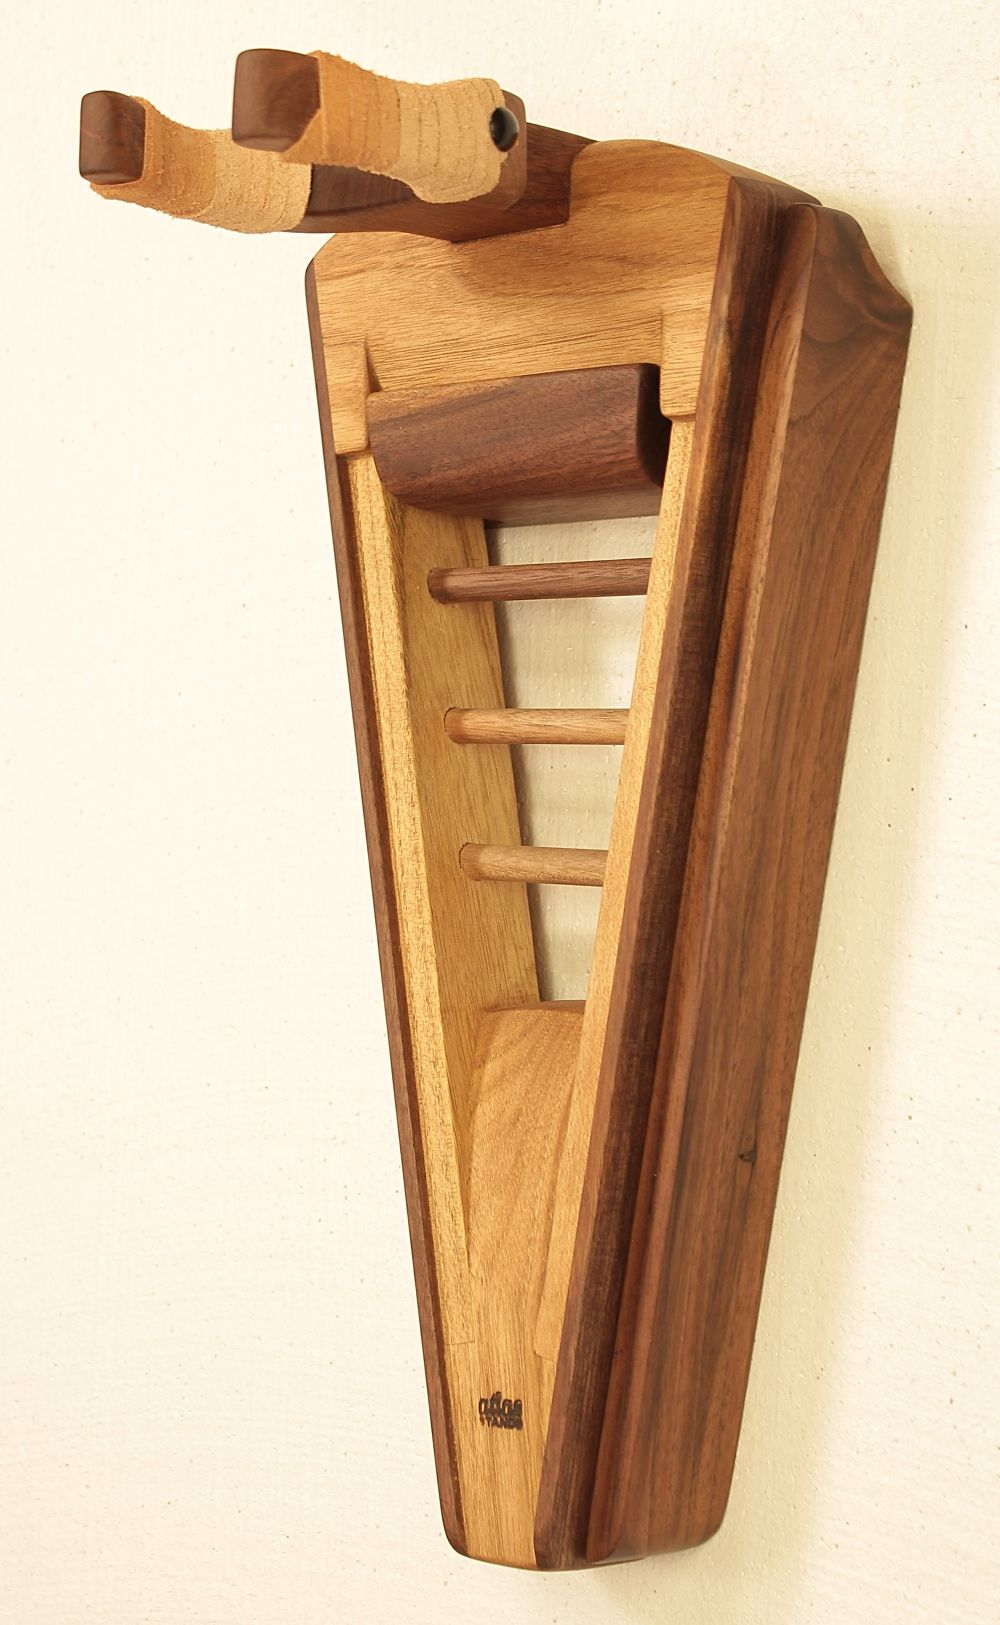 Pin By Nate Spaulding On Guitar Ideas Guitar Stand